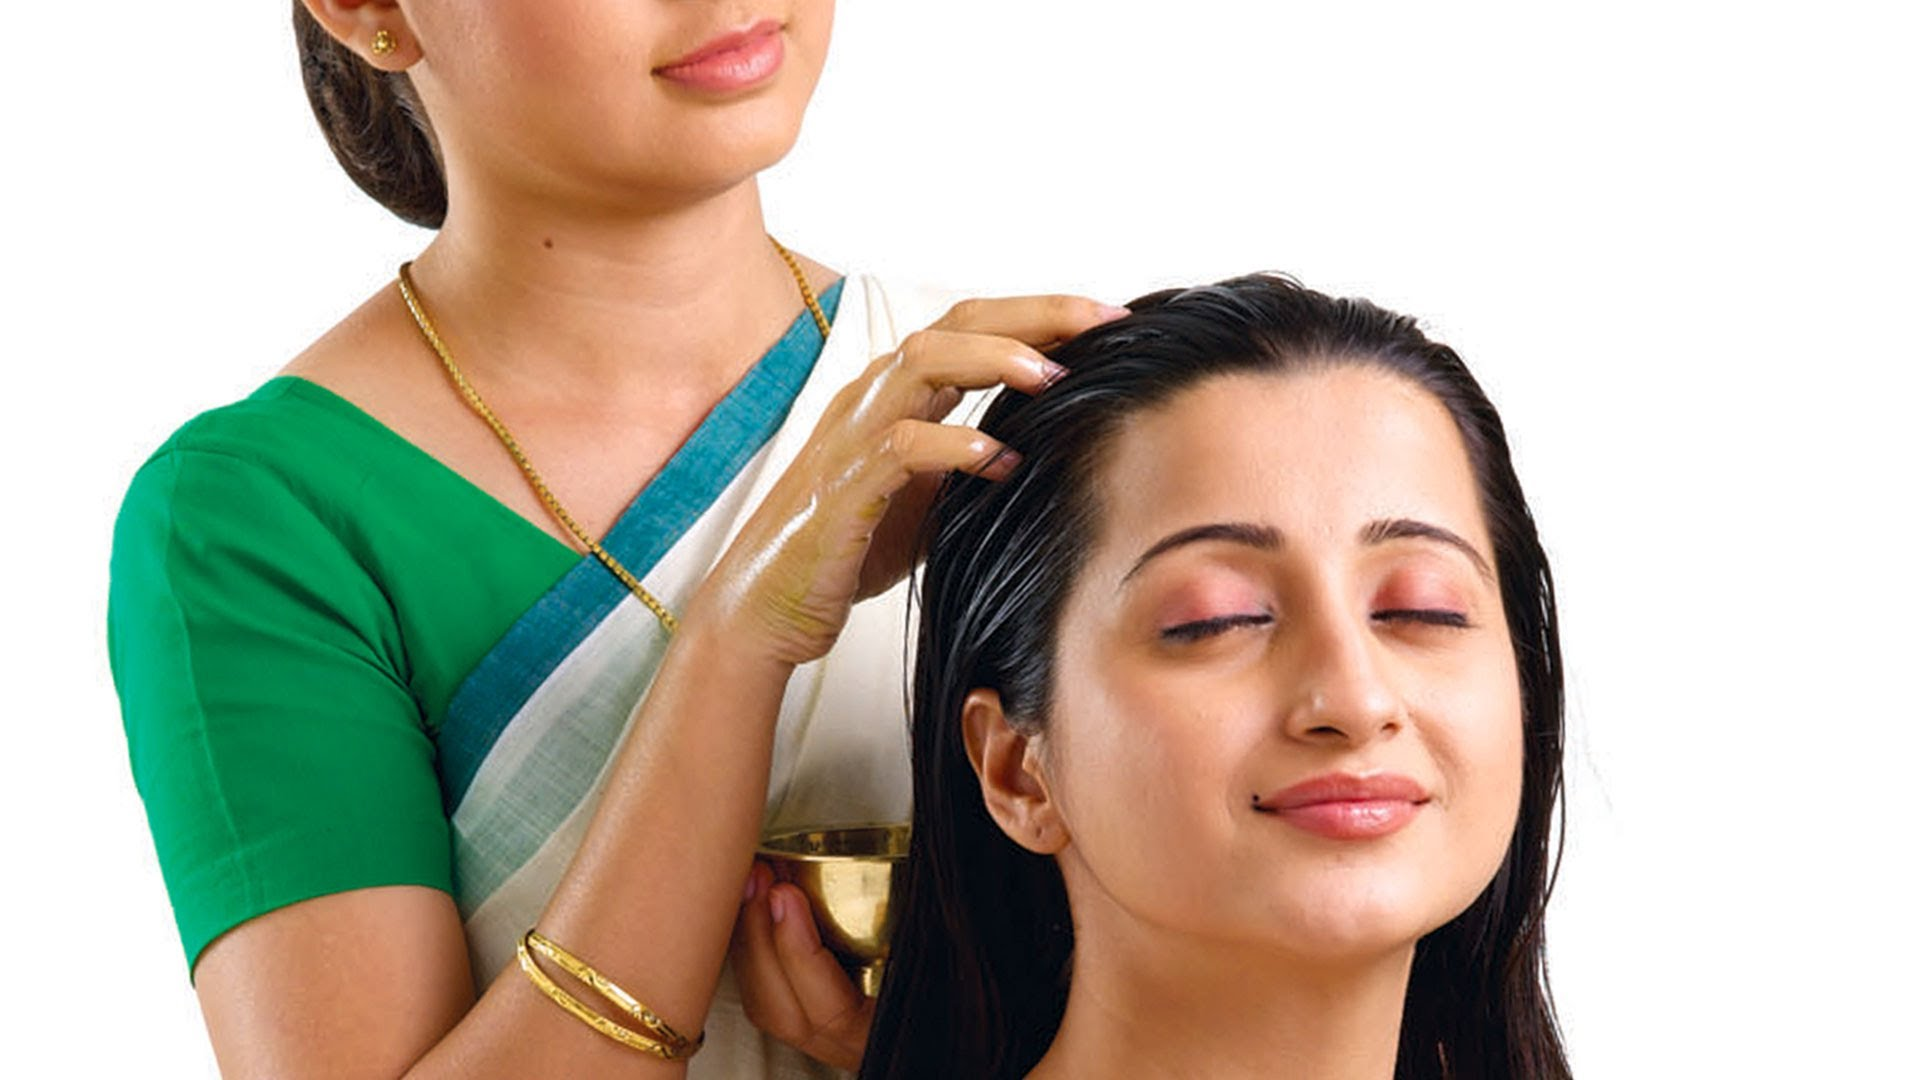 Why Should Urban Women Consider Hair Transplant For Women in India?